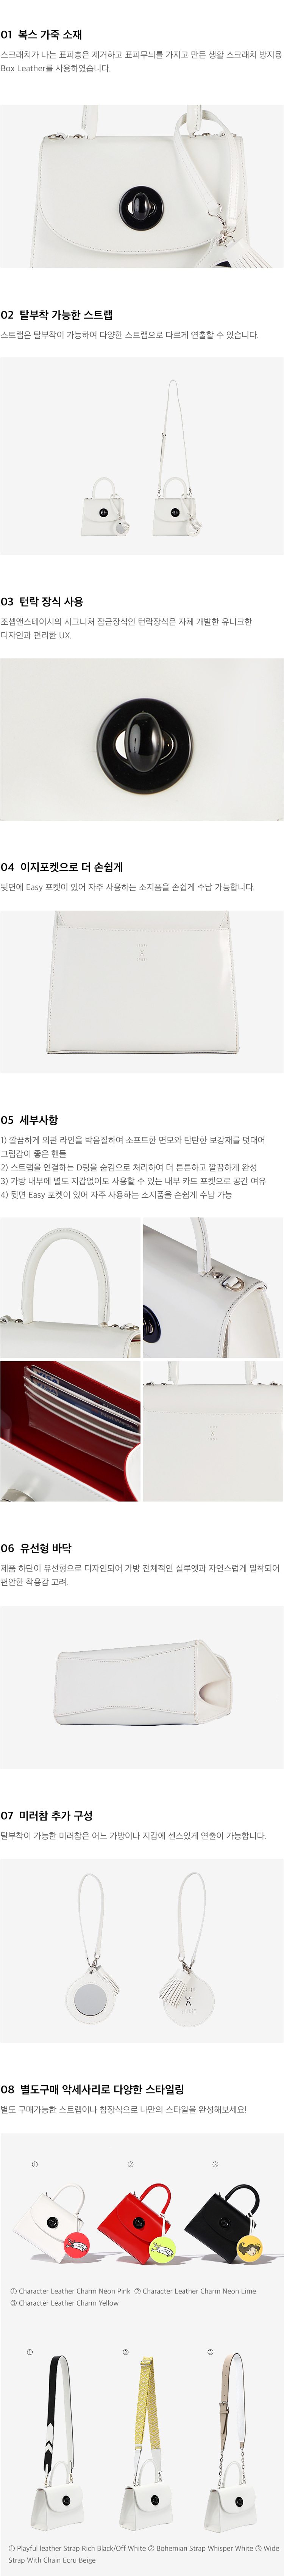 조셉앤스테이시(JOSEPH&STACEY) Joseph A Mini Plus Off white